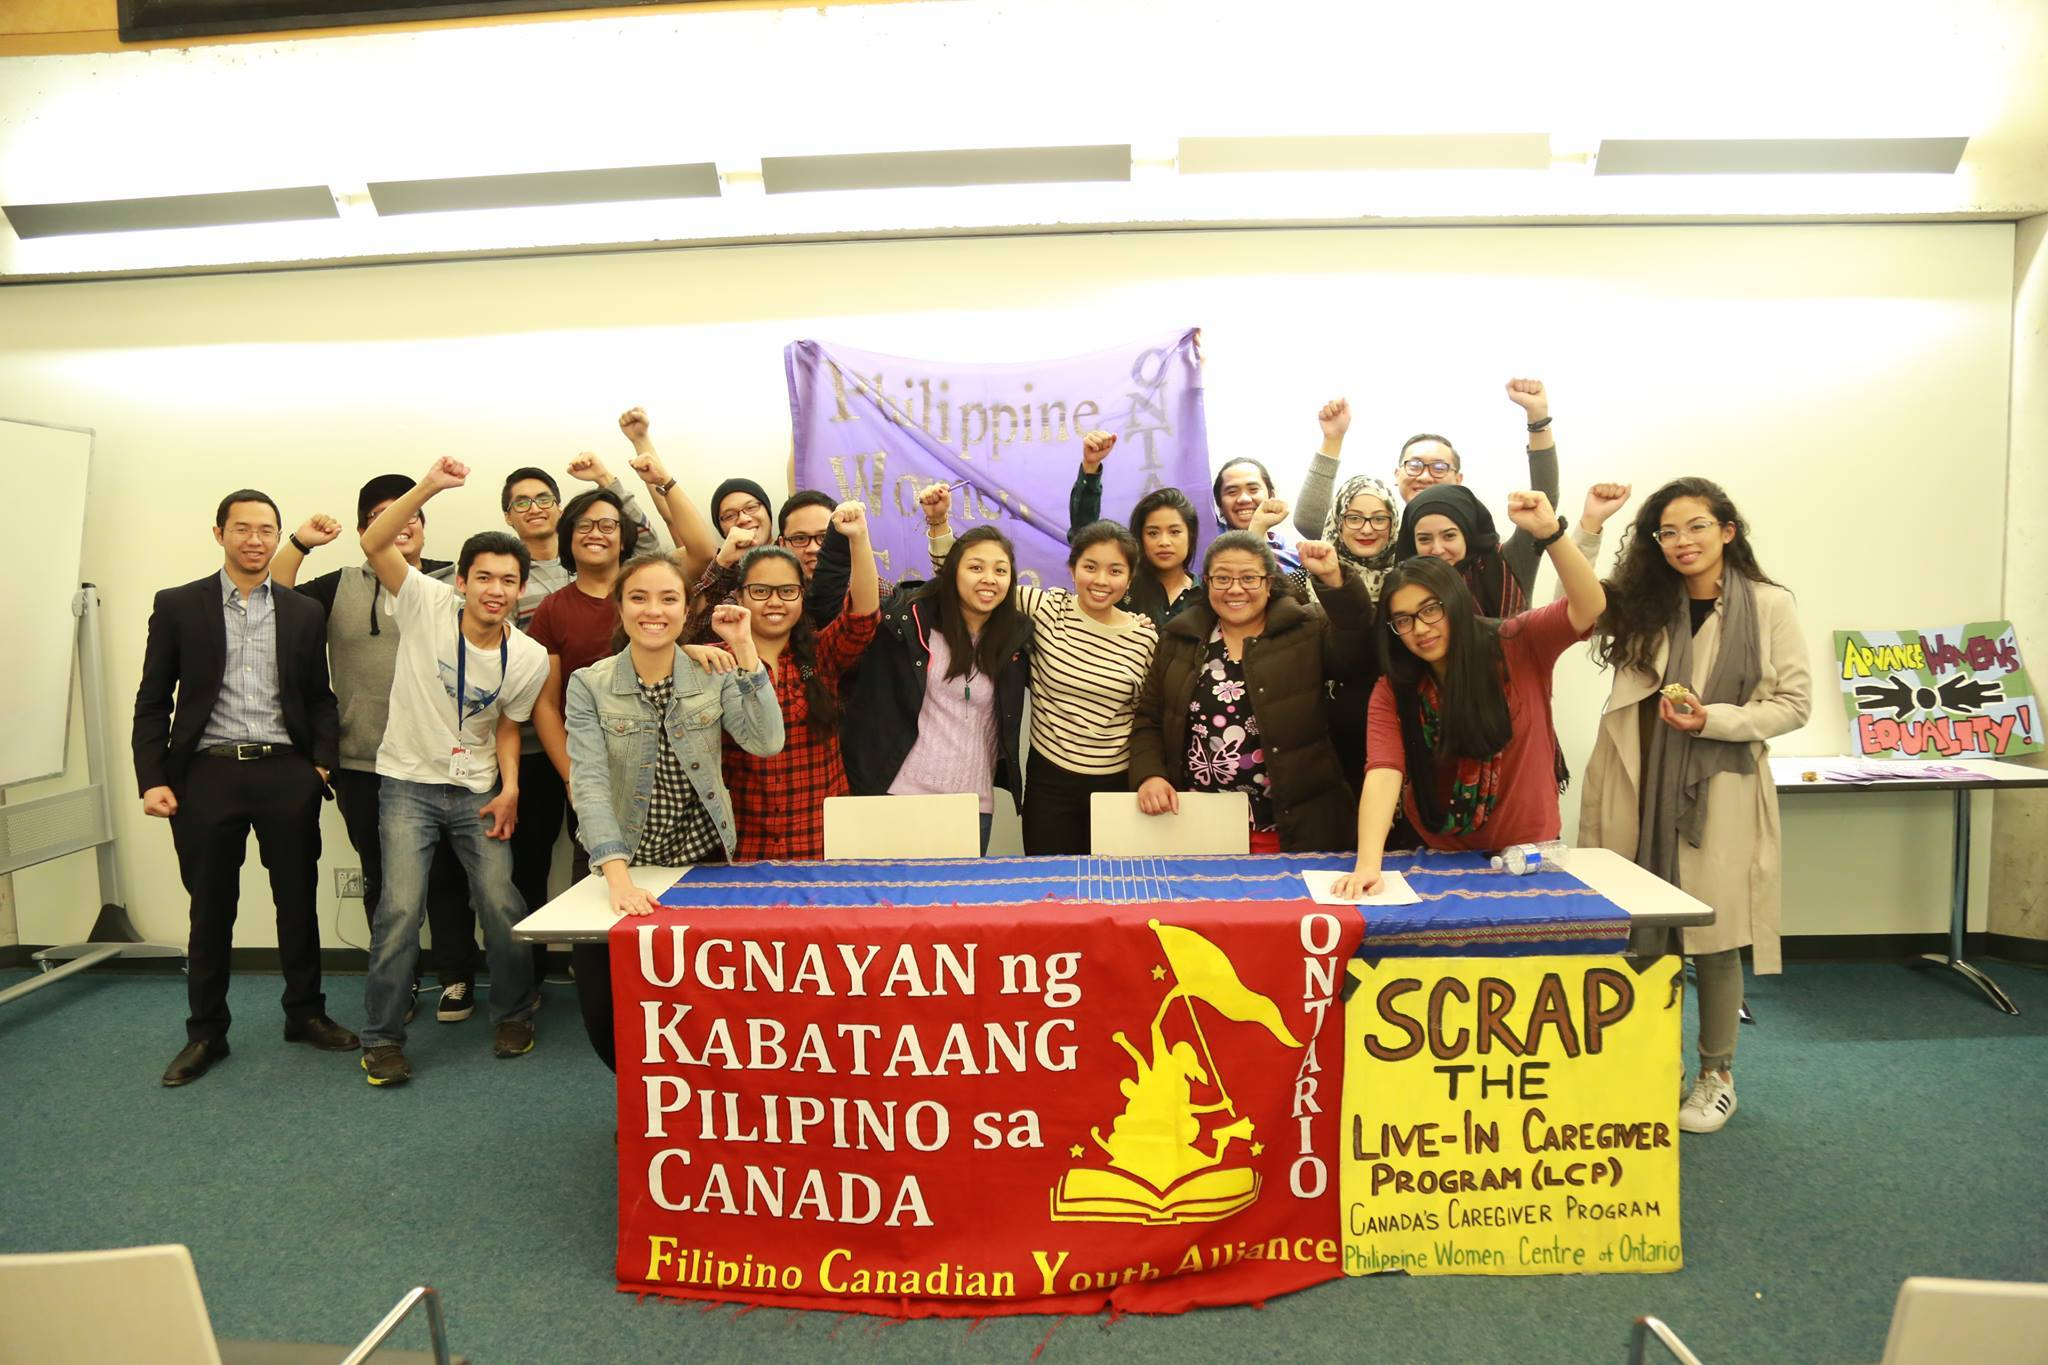 magkaisa centre filipino canadian youth and women s filipino canadian youth and women s organizations continue to celebrate international women s month launch of second critical discussion in their